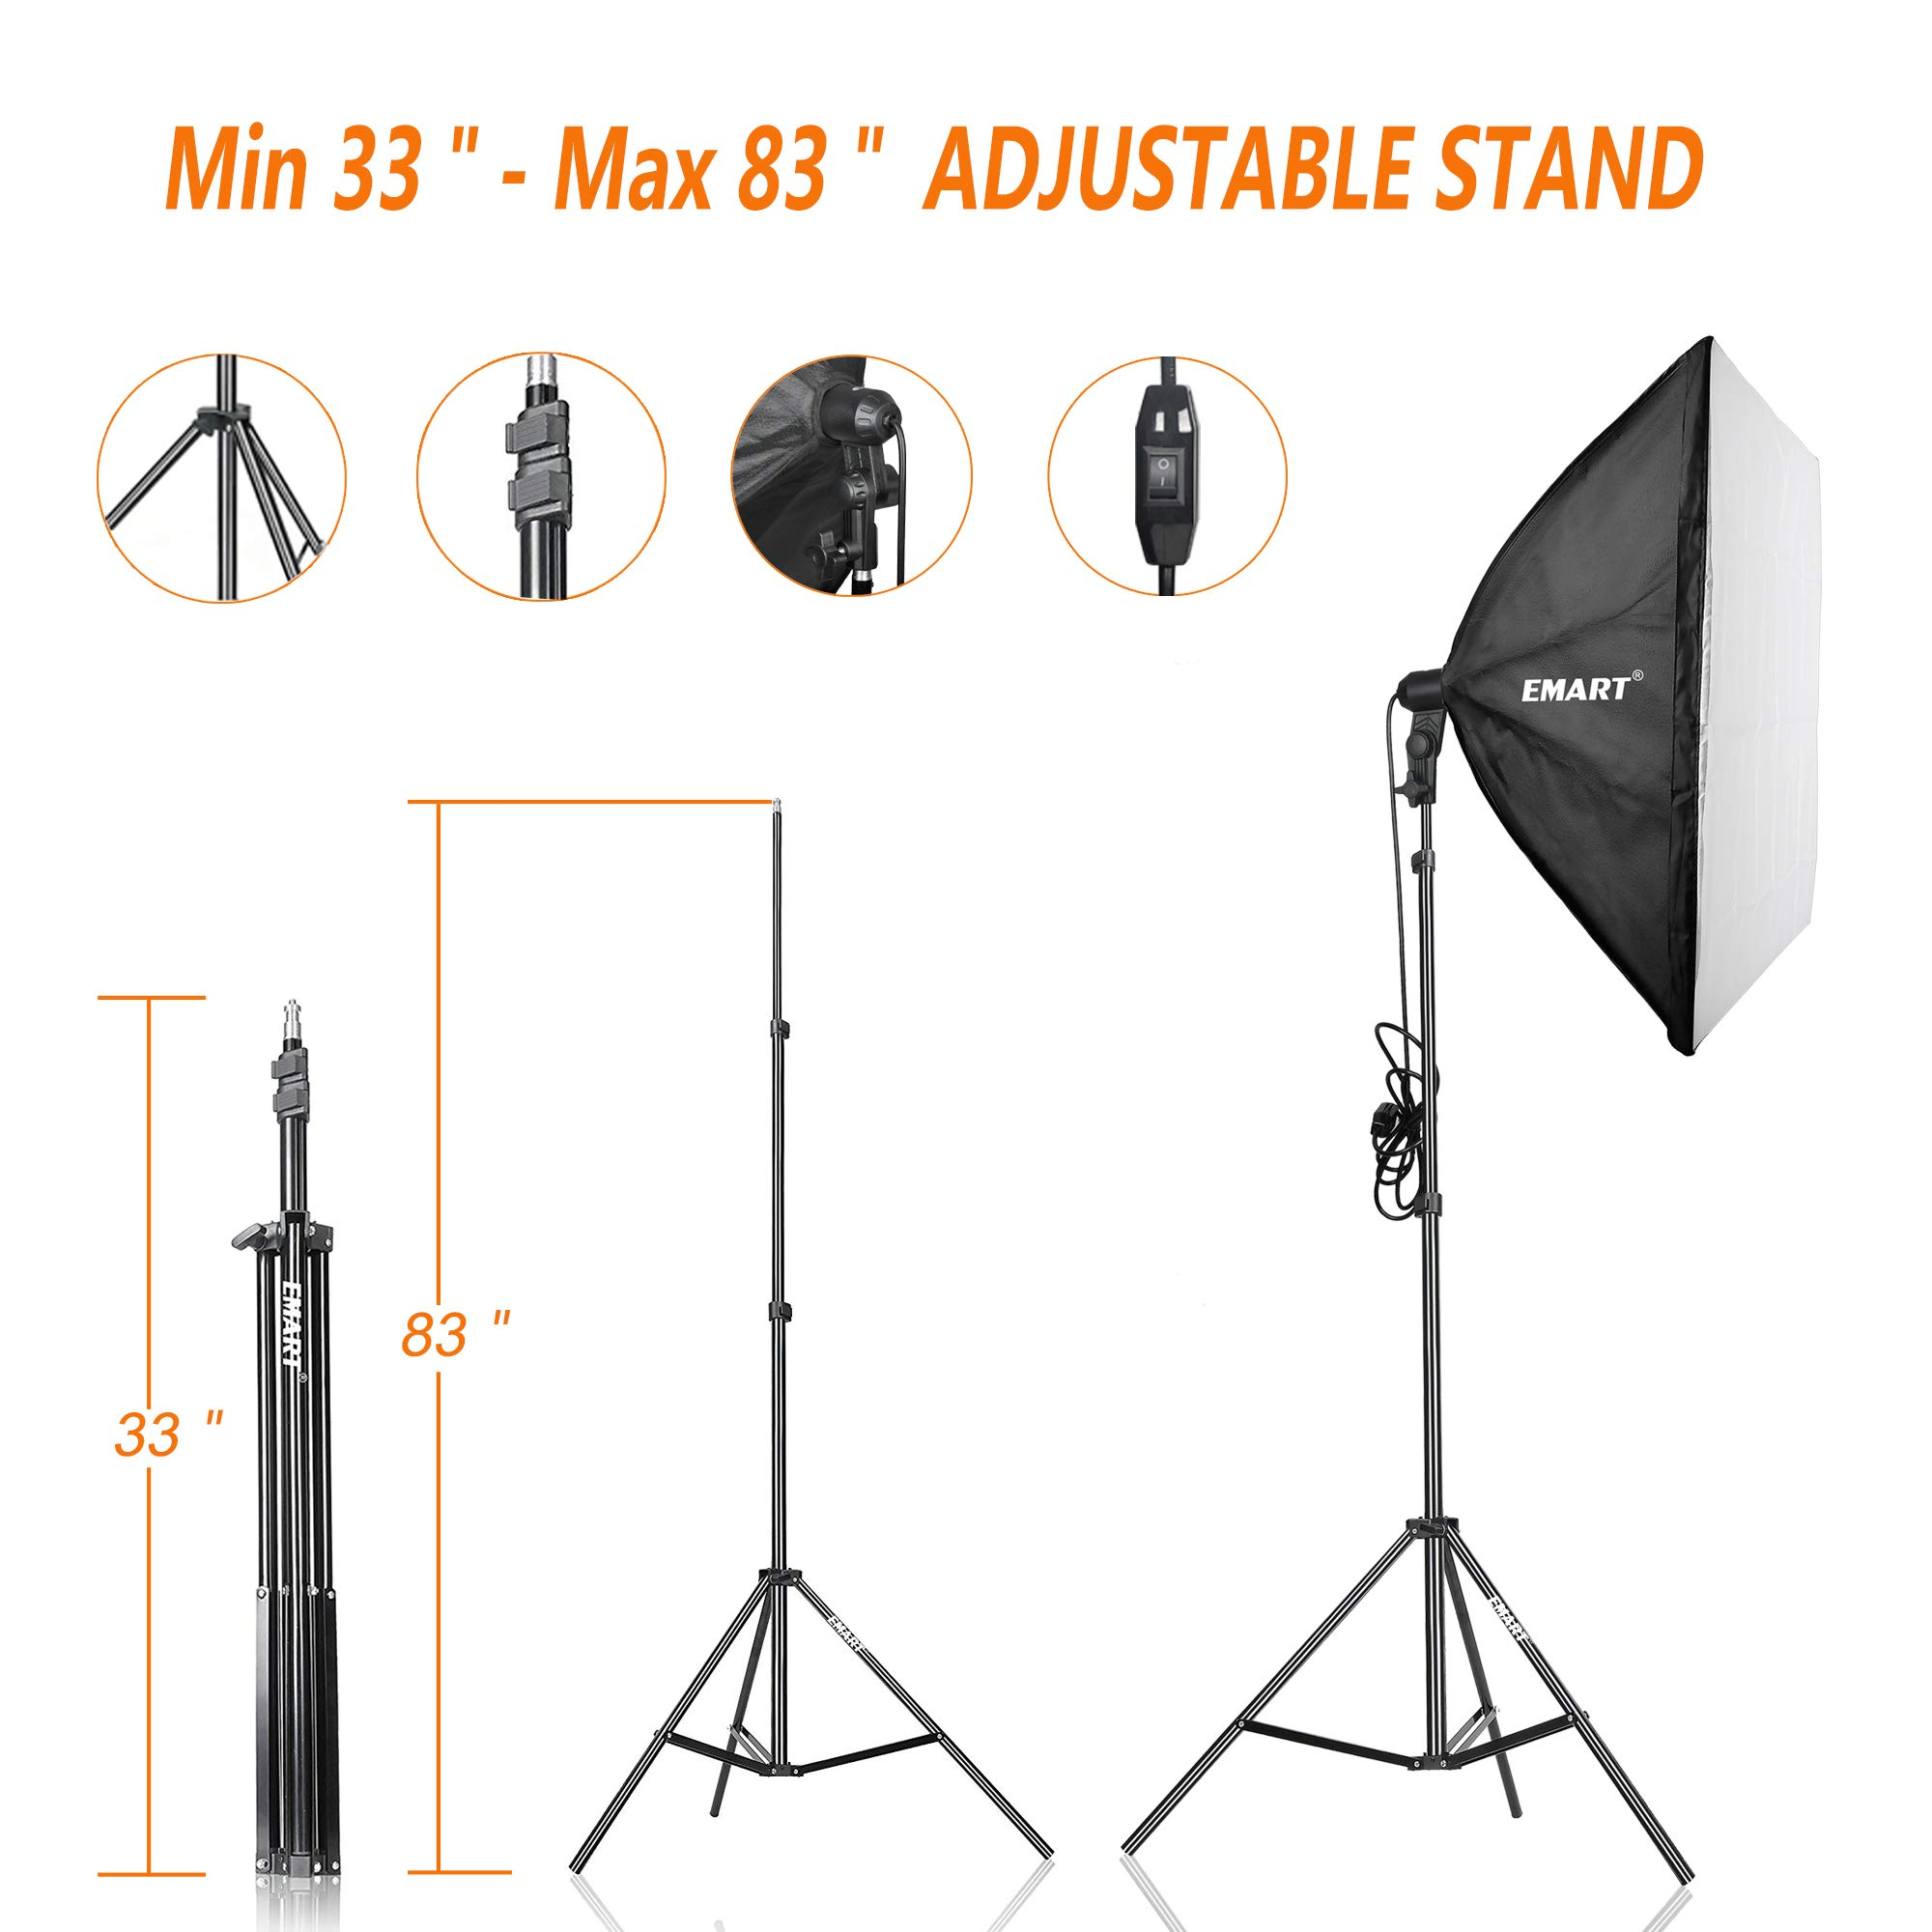 Emart 900W Softbox Lighting Kit Photography Continuous Photo Studio Light System for YouTube Video Shooting Soft Box 24'' x 24'' by EMART (Image #5)